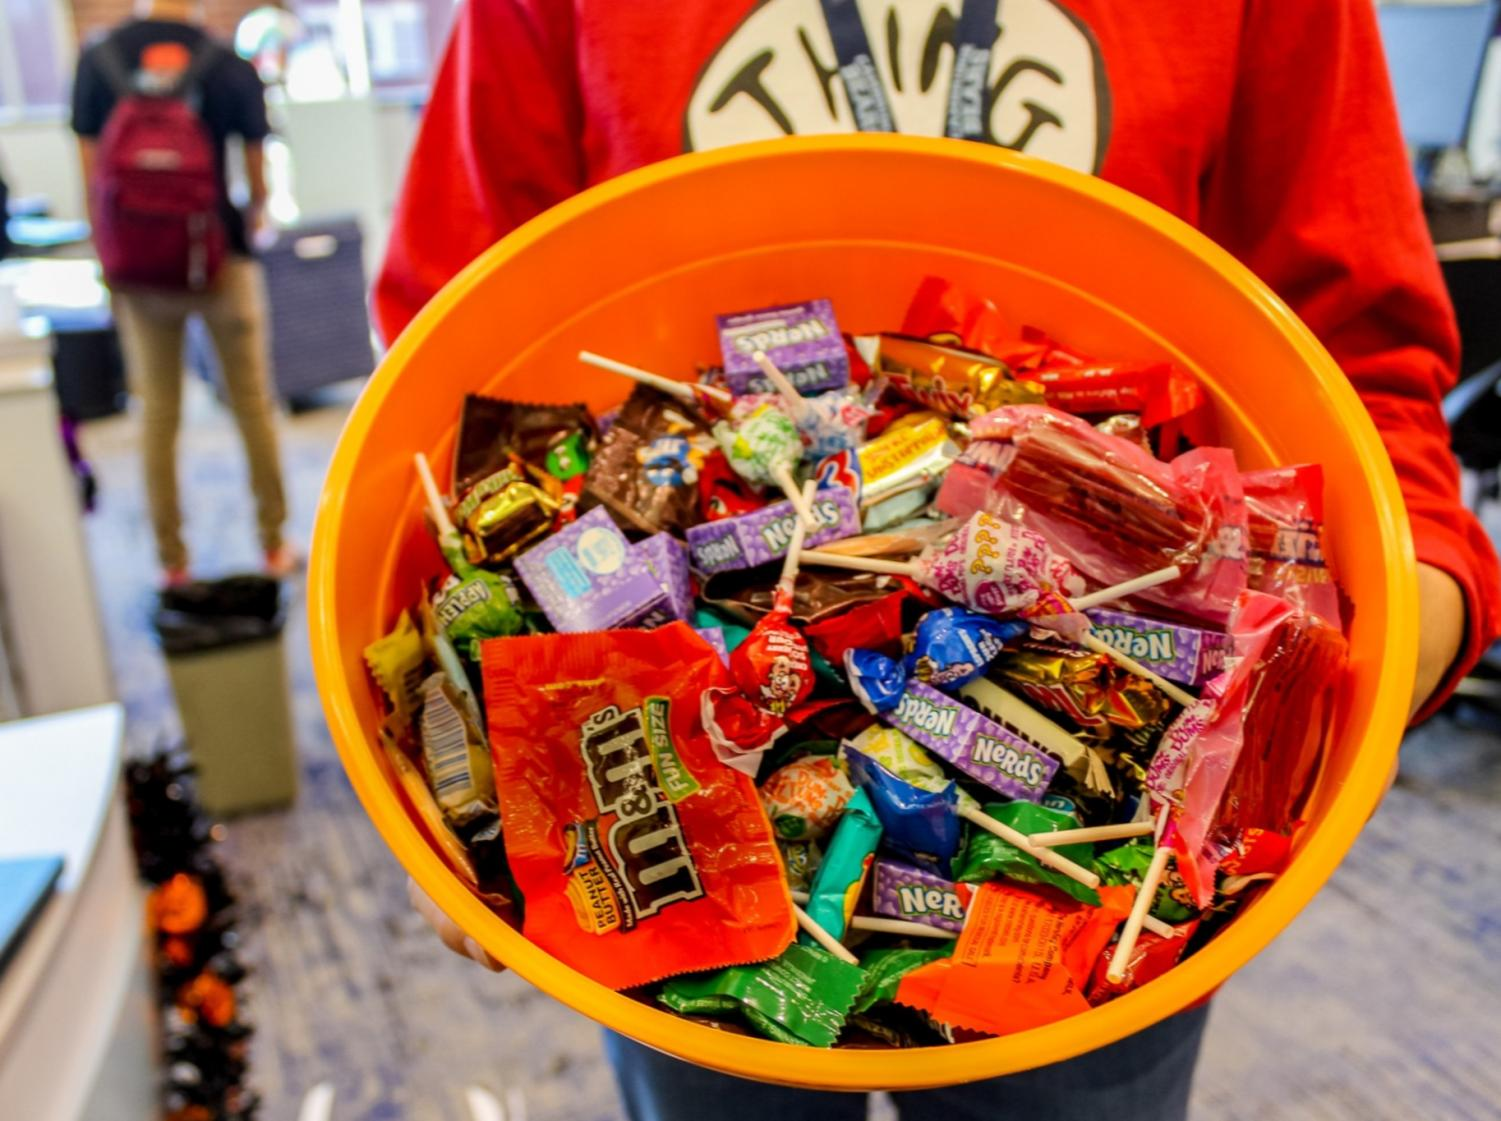 Bowls of candy will await trick or treaters as they knock on doors and fill  their bags with a variety of sweets.